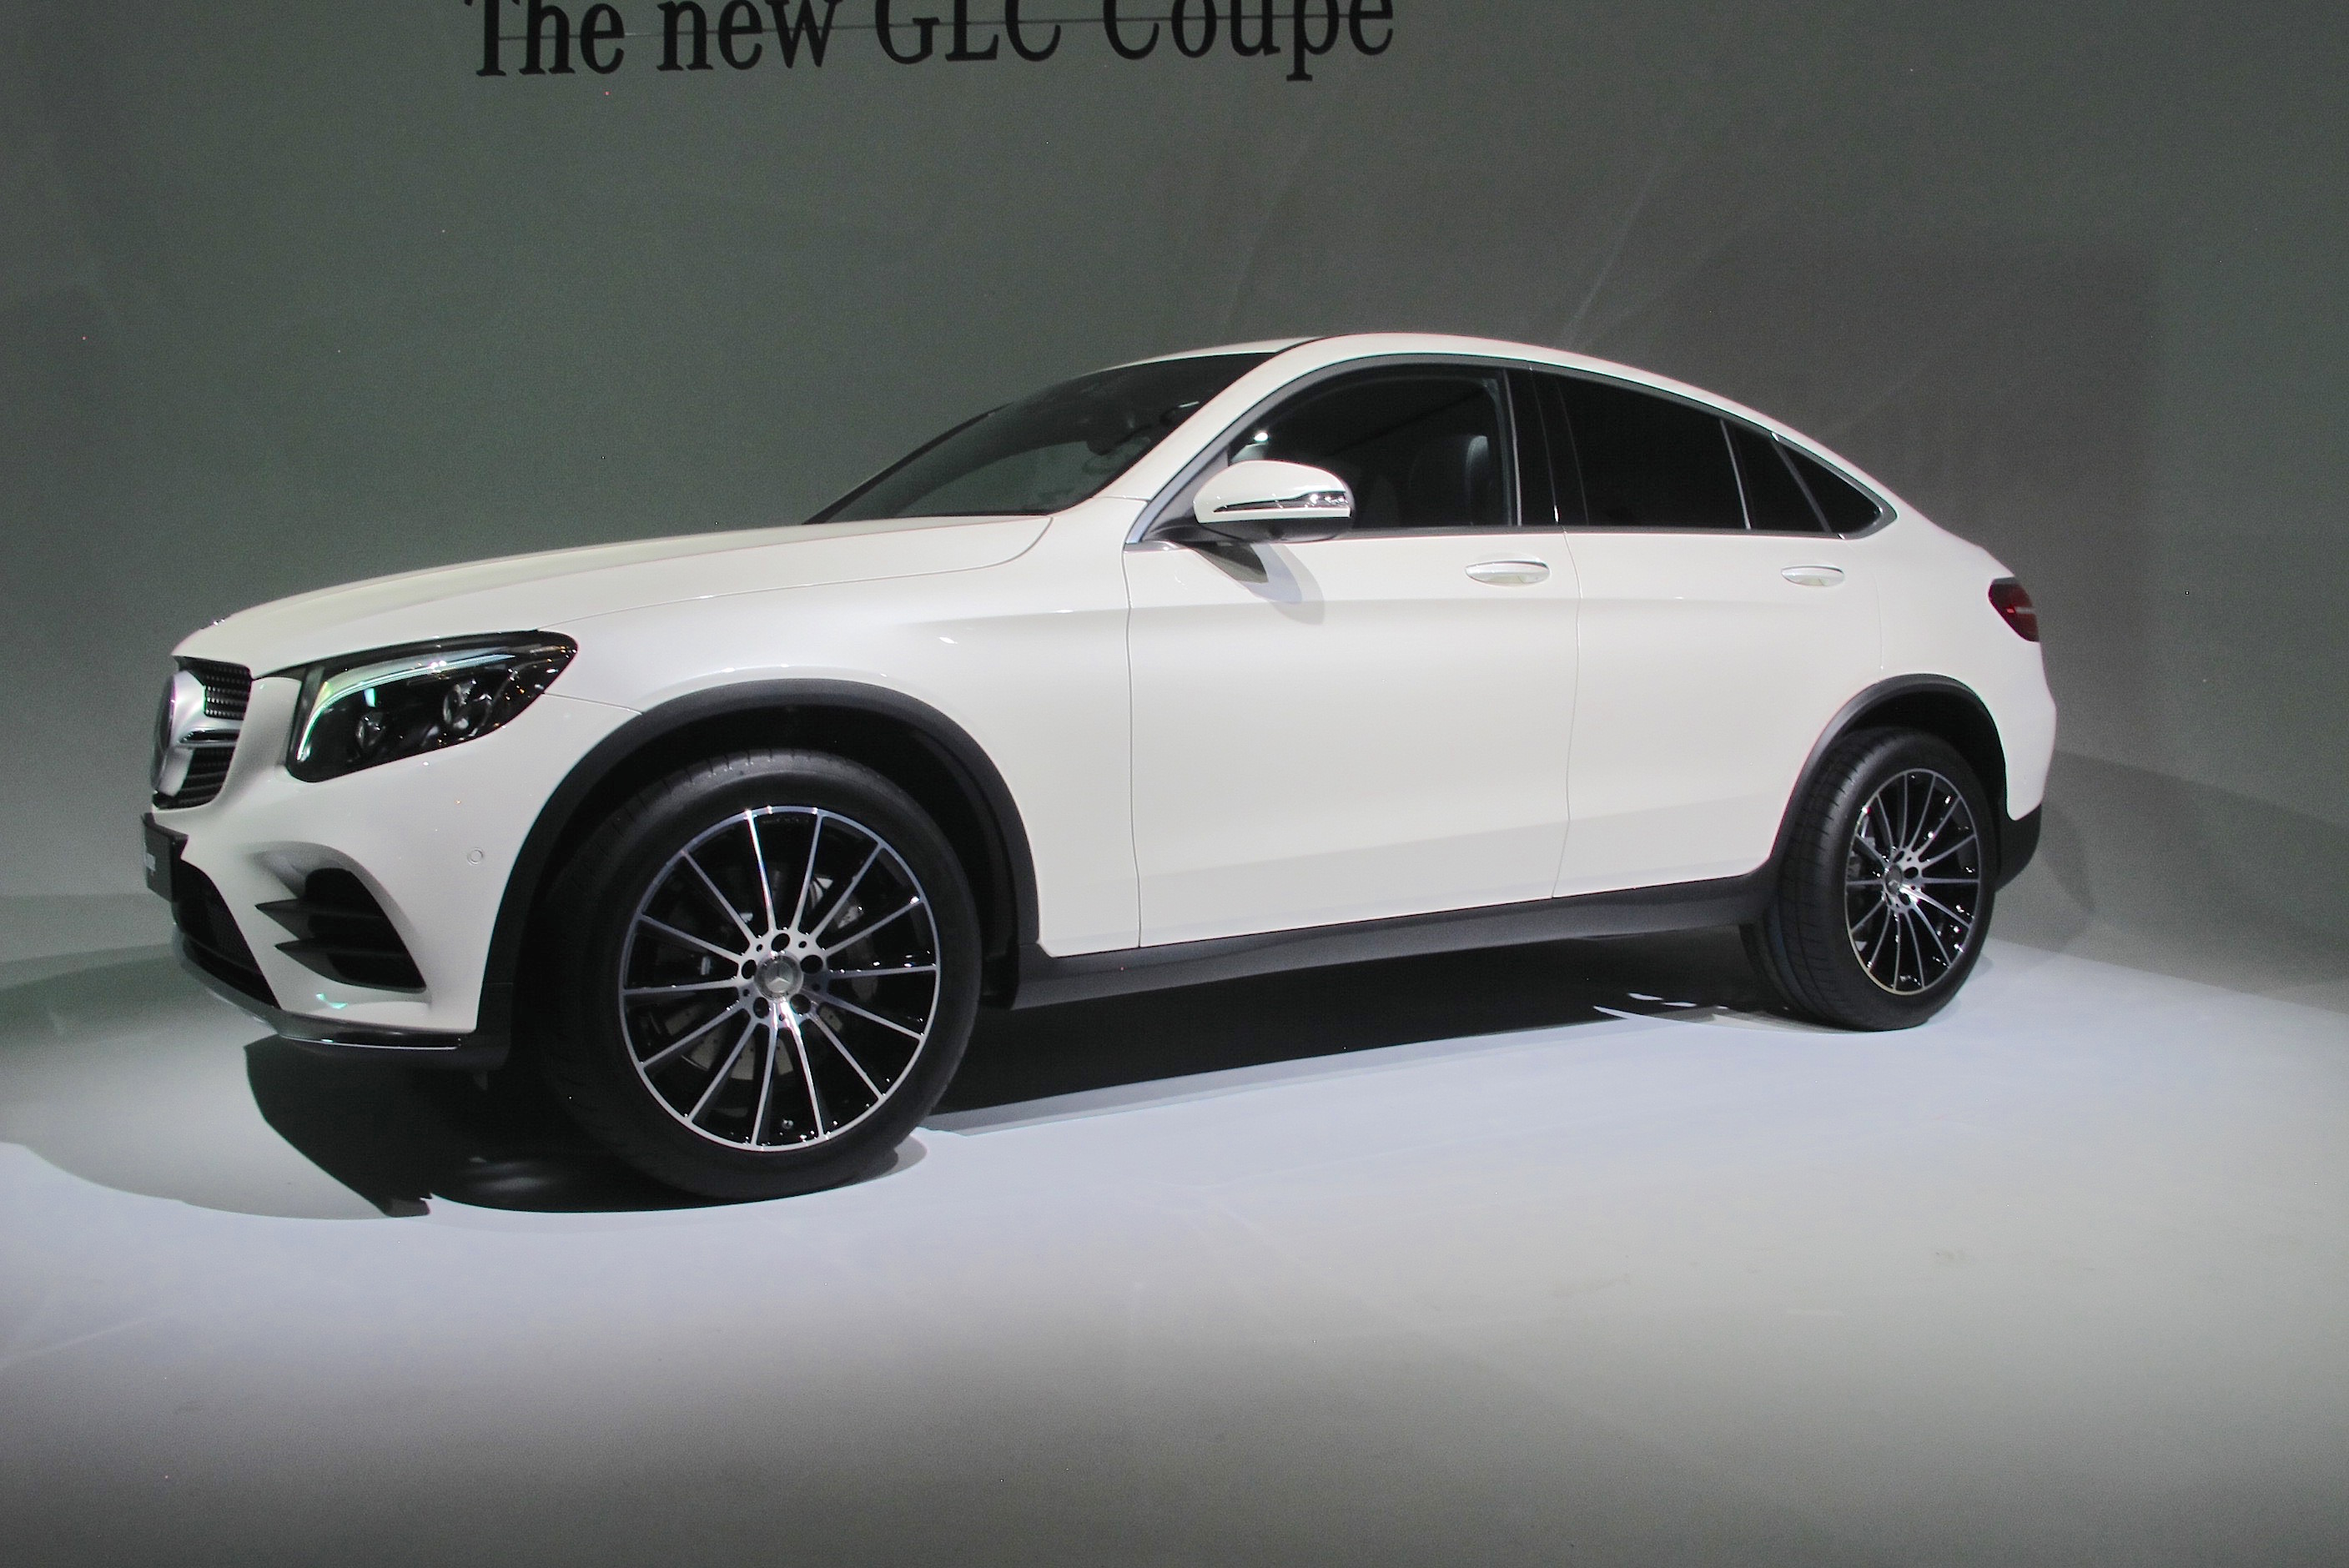 Mercedes Benz Clc 2019 >> 2017 Mercedes-Benz GLC Coupe and GLC43 preview